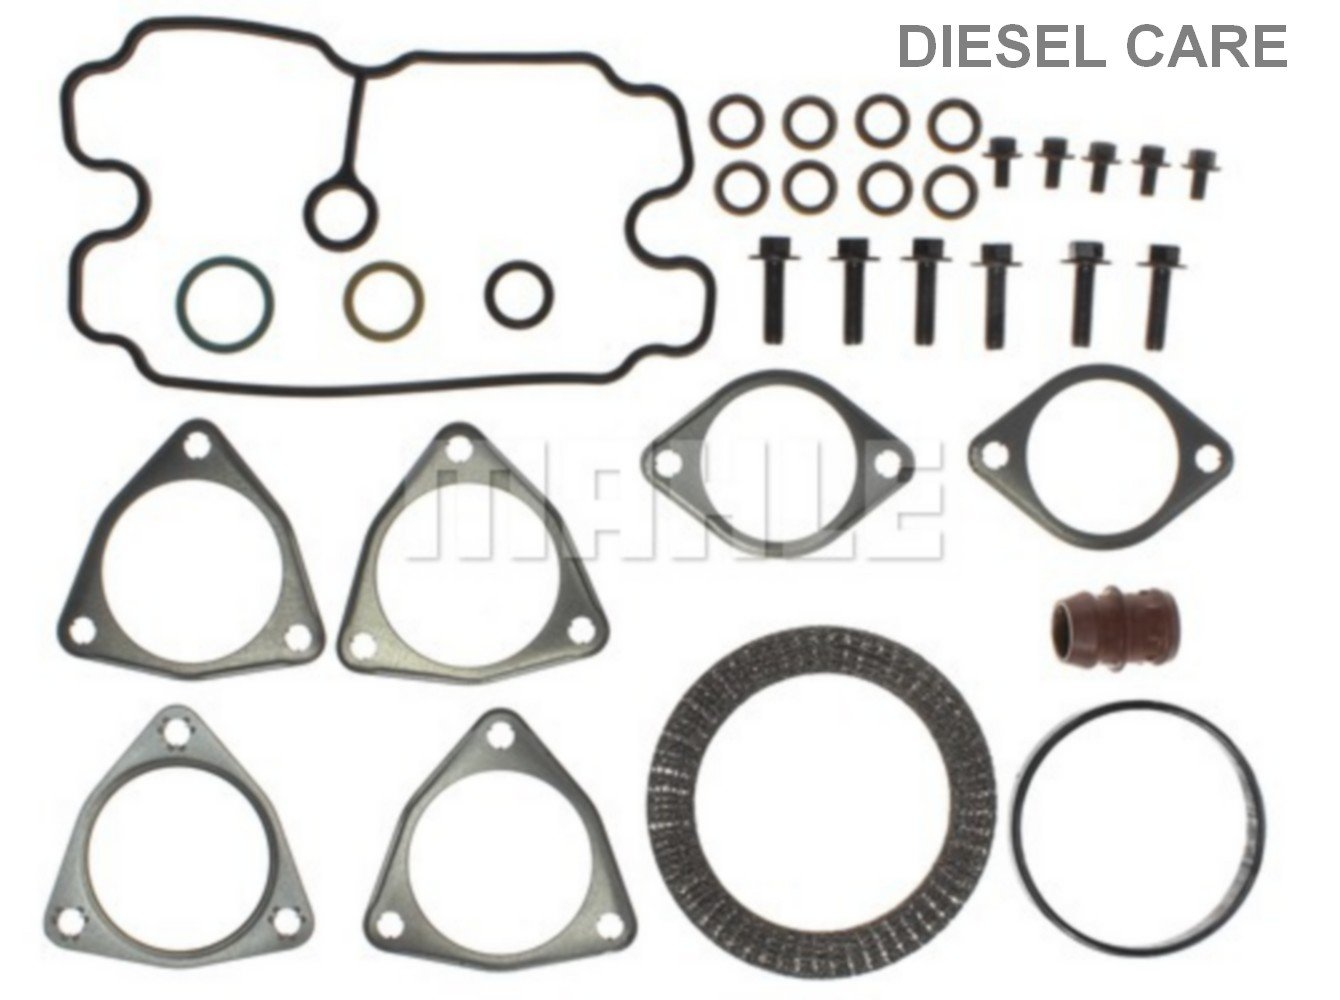 Diesel Care 6.4 powerstroke turbocharger install gasket kit- Major by DCP Products